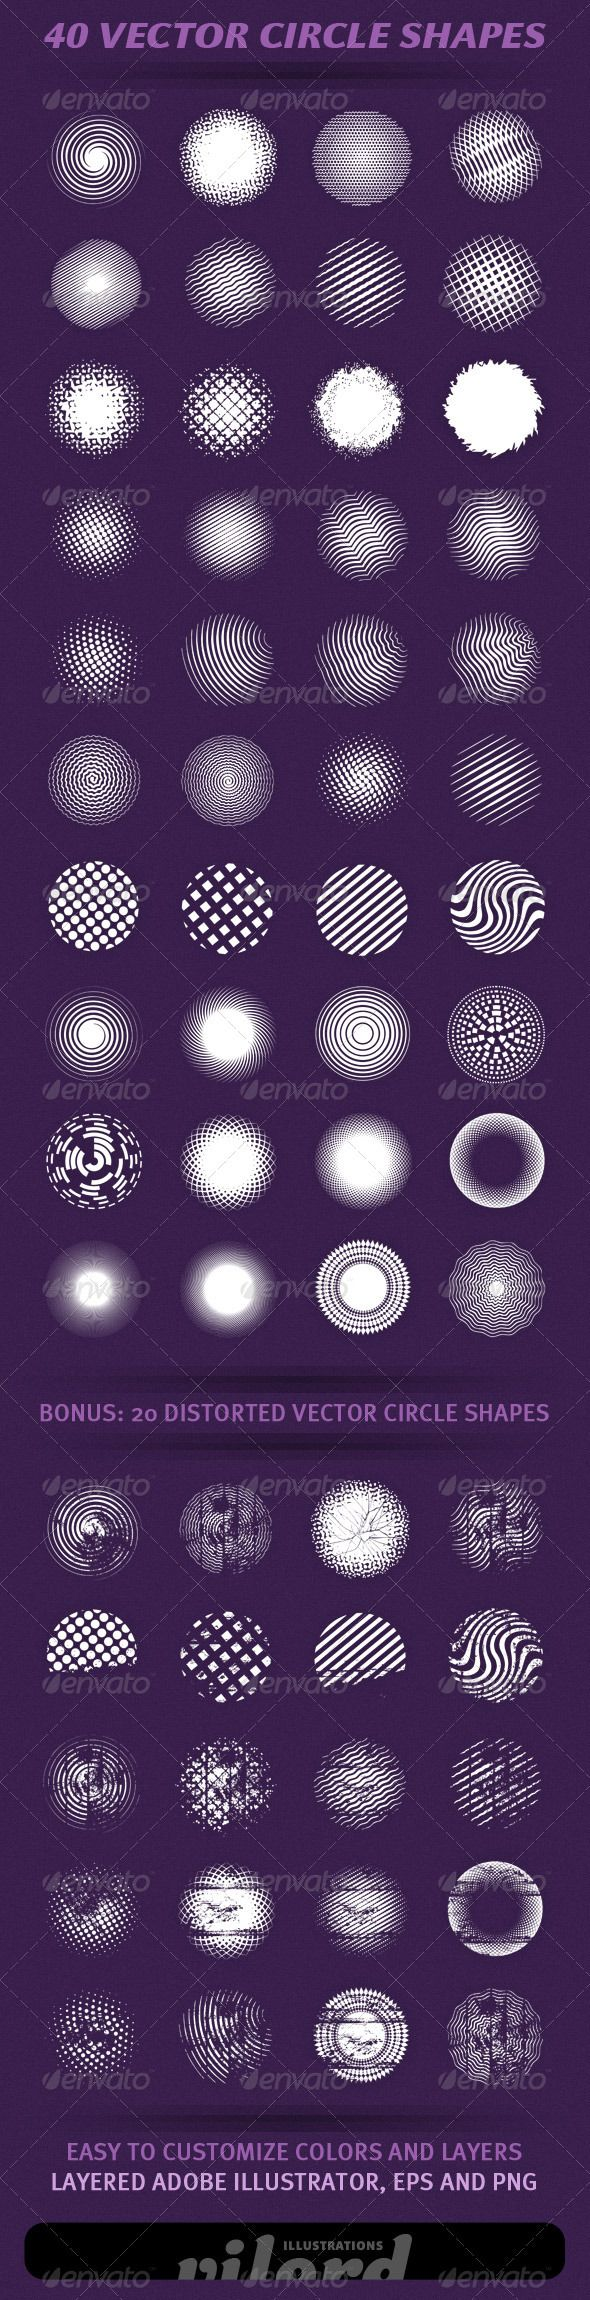 VECTOR DOWNLOAD (.ai, .psd) :: http://hardcast.de/pinterest-itmid-1001112216i.html ... 40 Vector Circle Shapes ...  abstract, circles, circular, decoration, ornaments, round, shapes, swirls, symbols, vector  ... Vectors Graphics Design Illustration Isolated Vector Templates Textures Stock Business Realistic eCommerce Wordpress Infographics Element Print Webdesign ... DOWNLOAD :: http://hardcast.de/pinterest-itmid-1001112216i.html